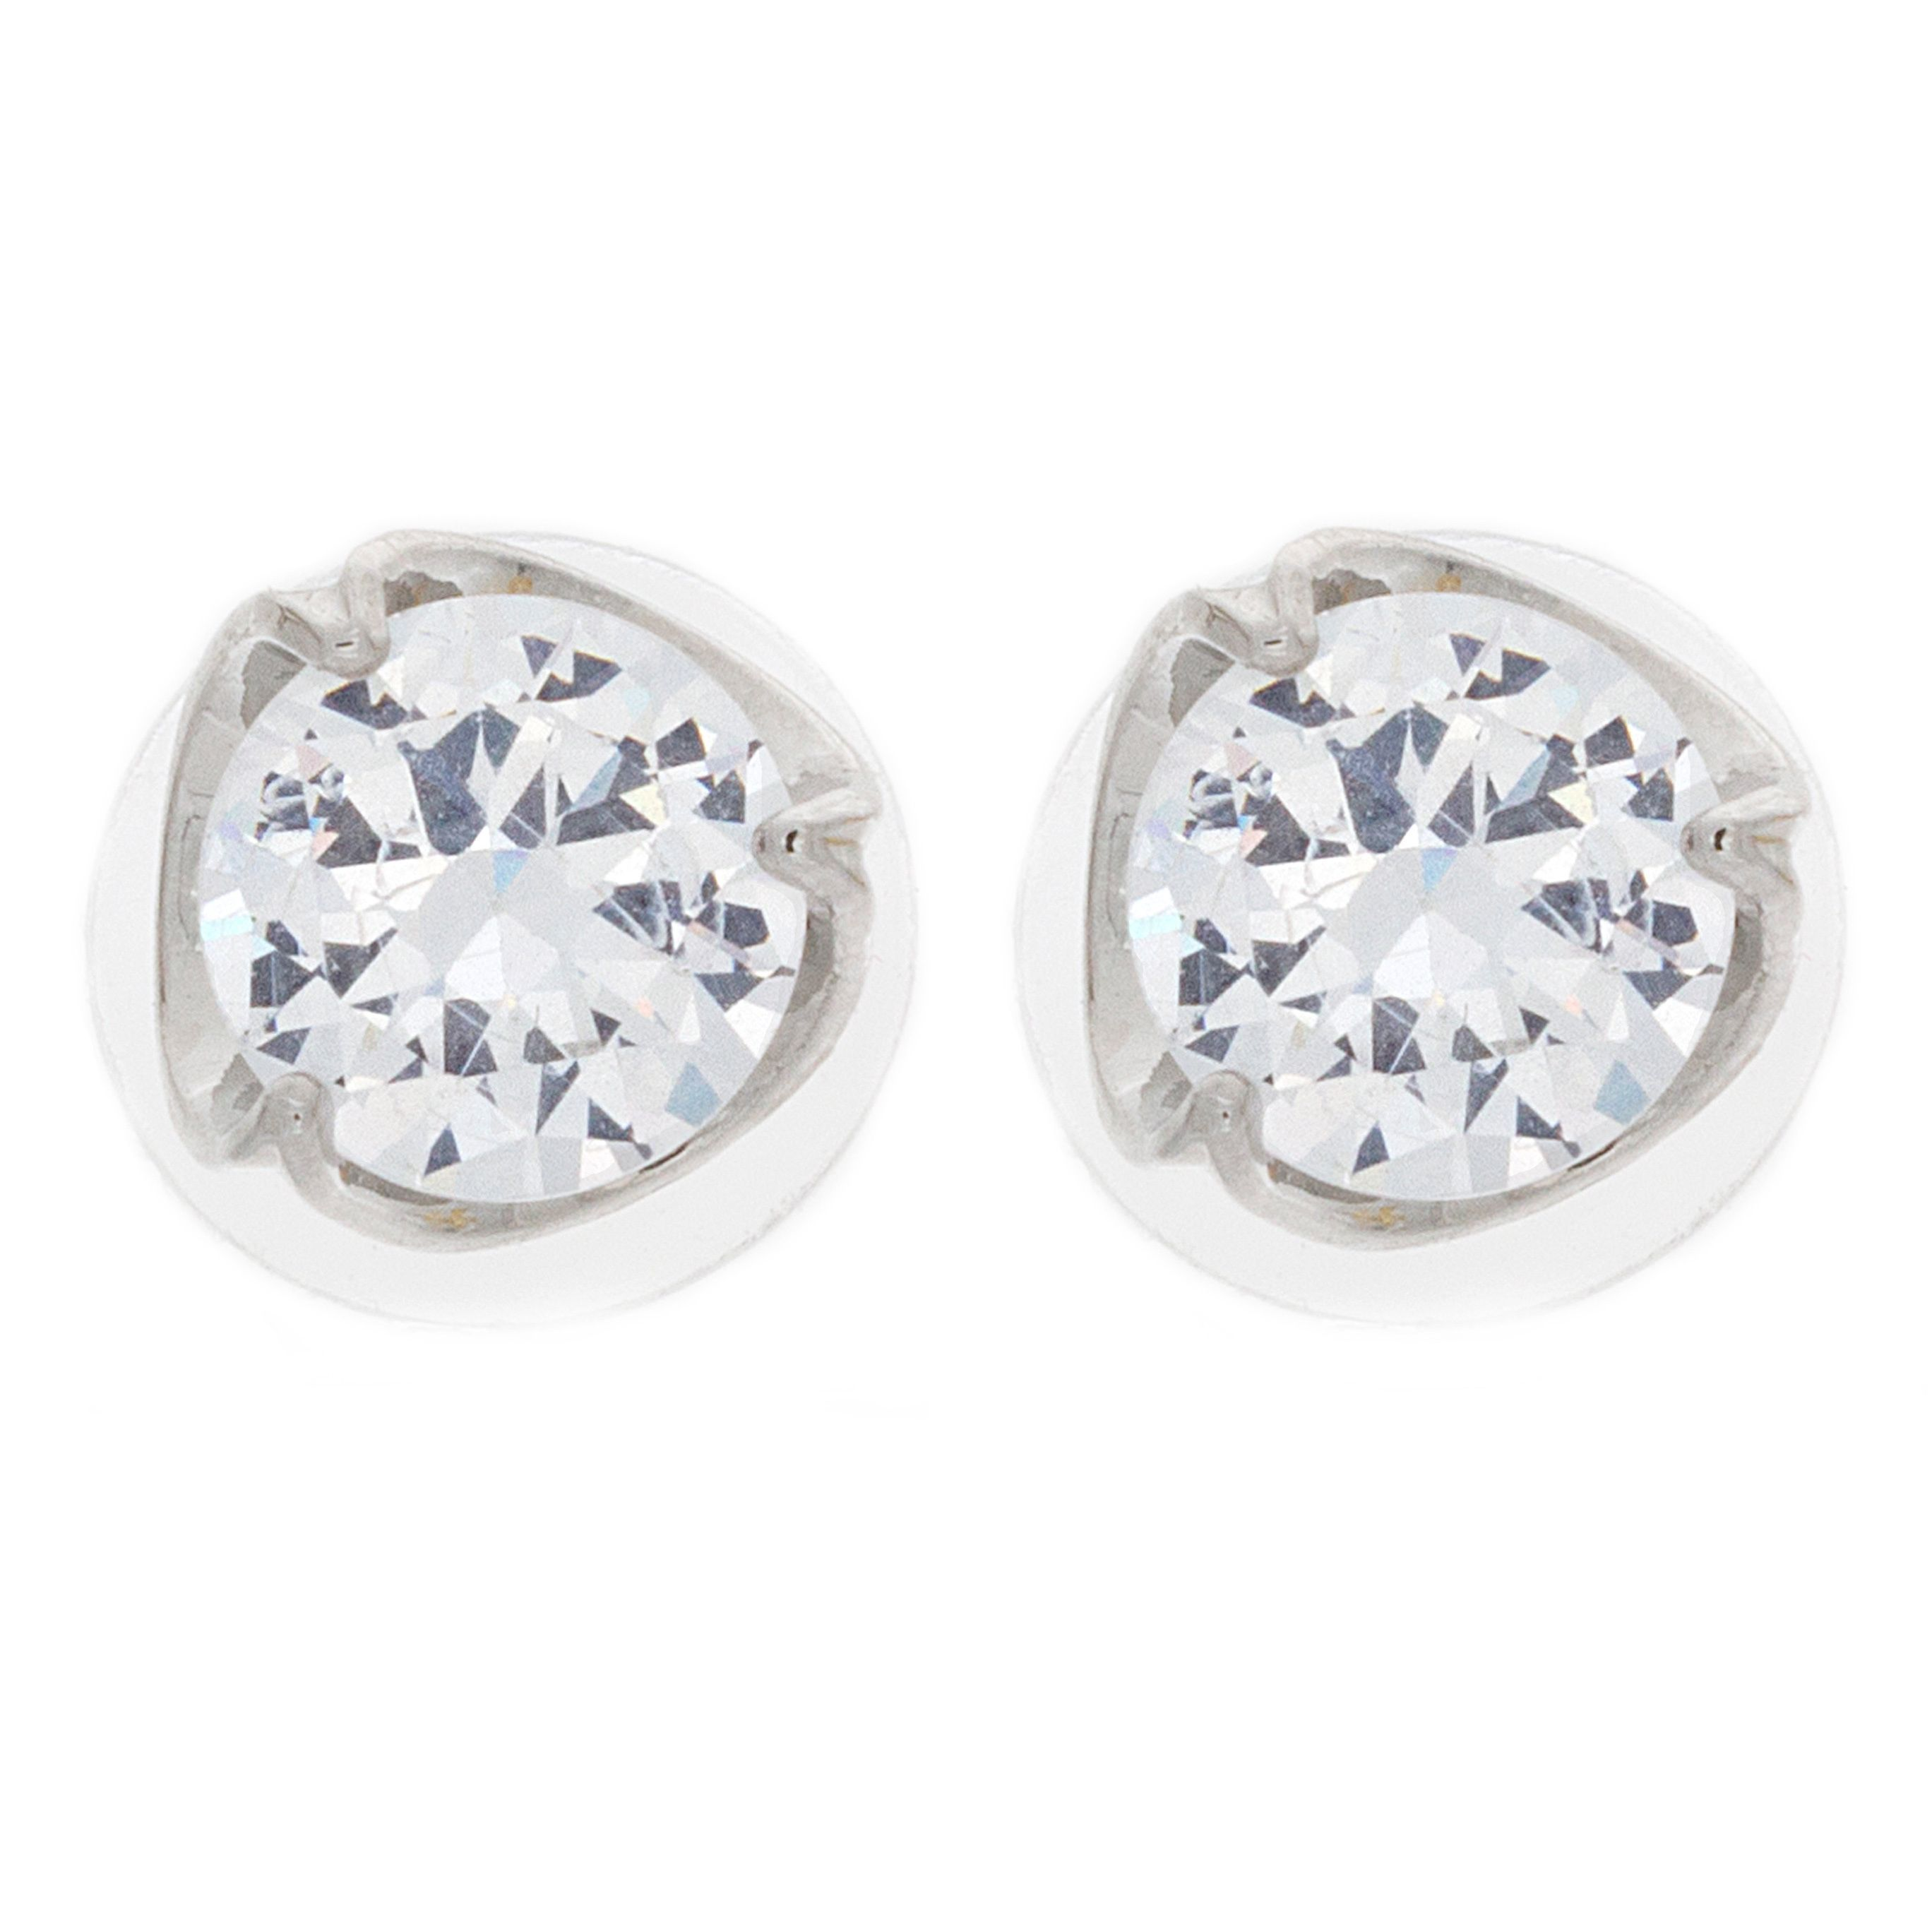 canada velazquez earrings diamonds arrera with add y zquez product vel solitaire carrera yg